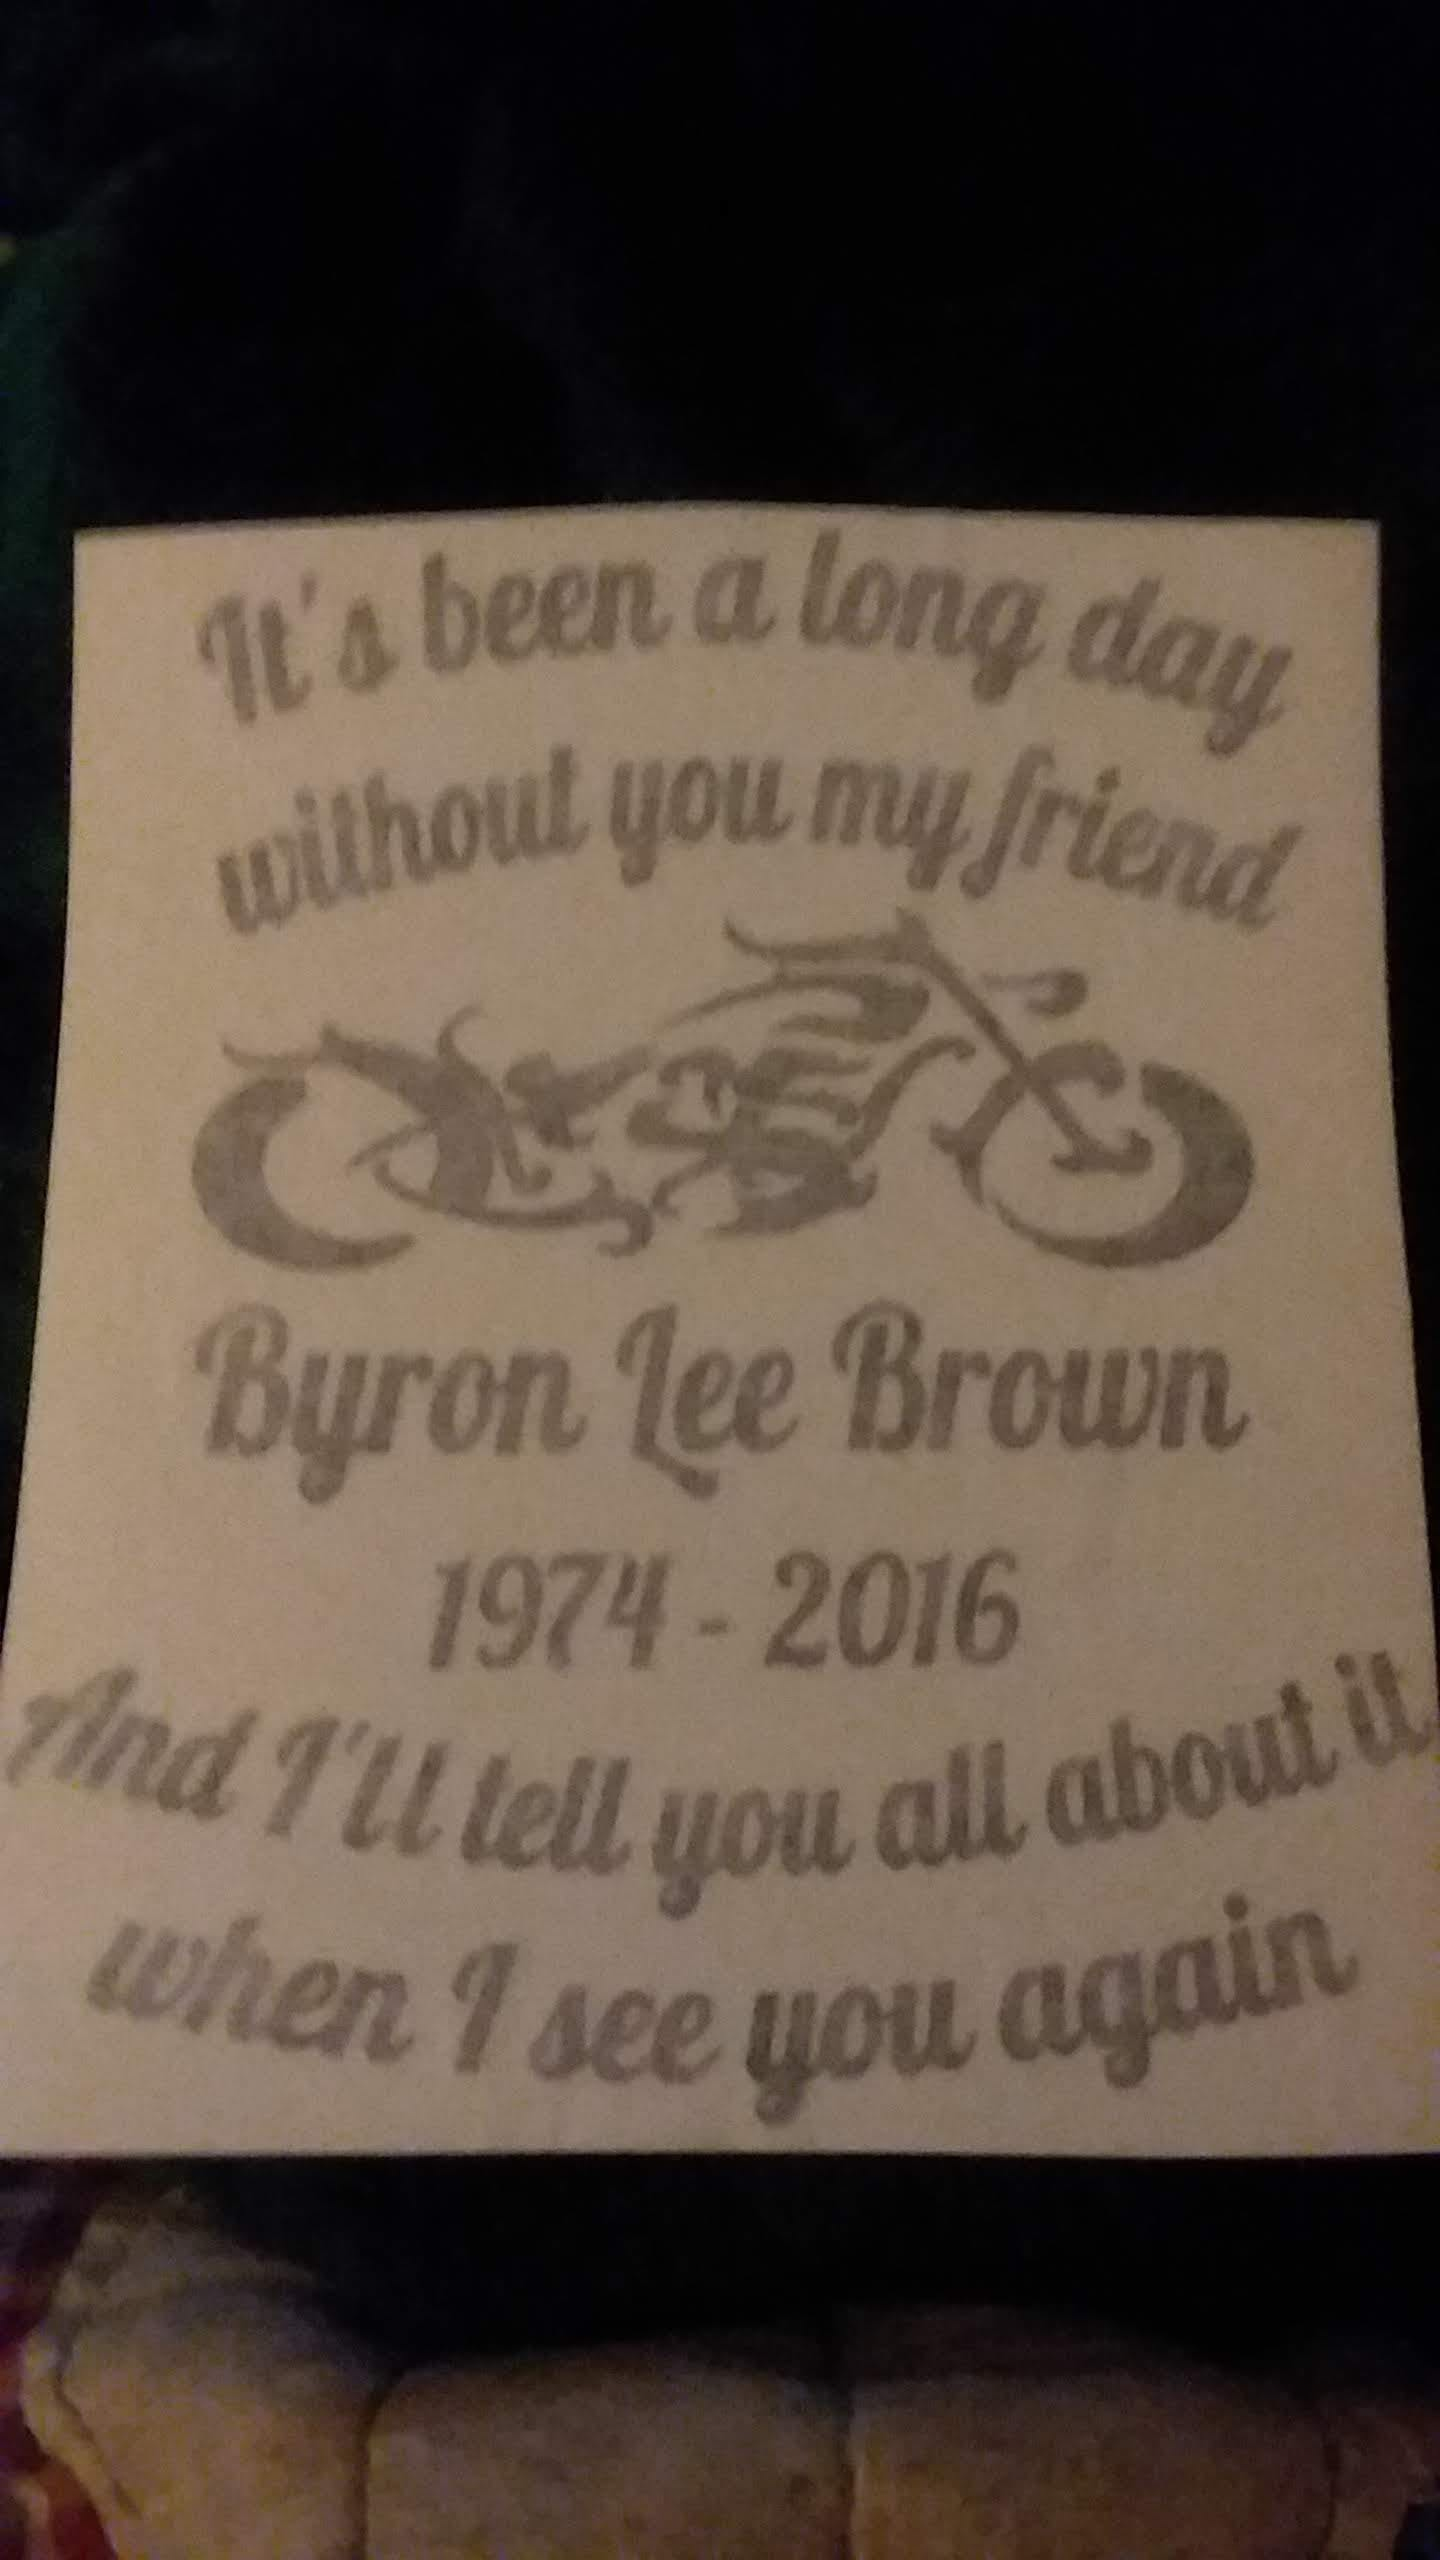 Its been a Long day Motorcycle In Loving Memory Window Decal Sticker